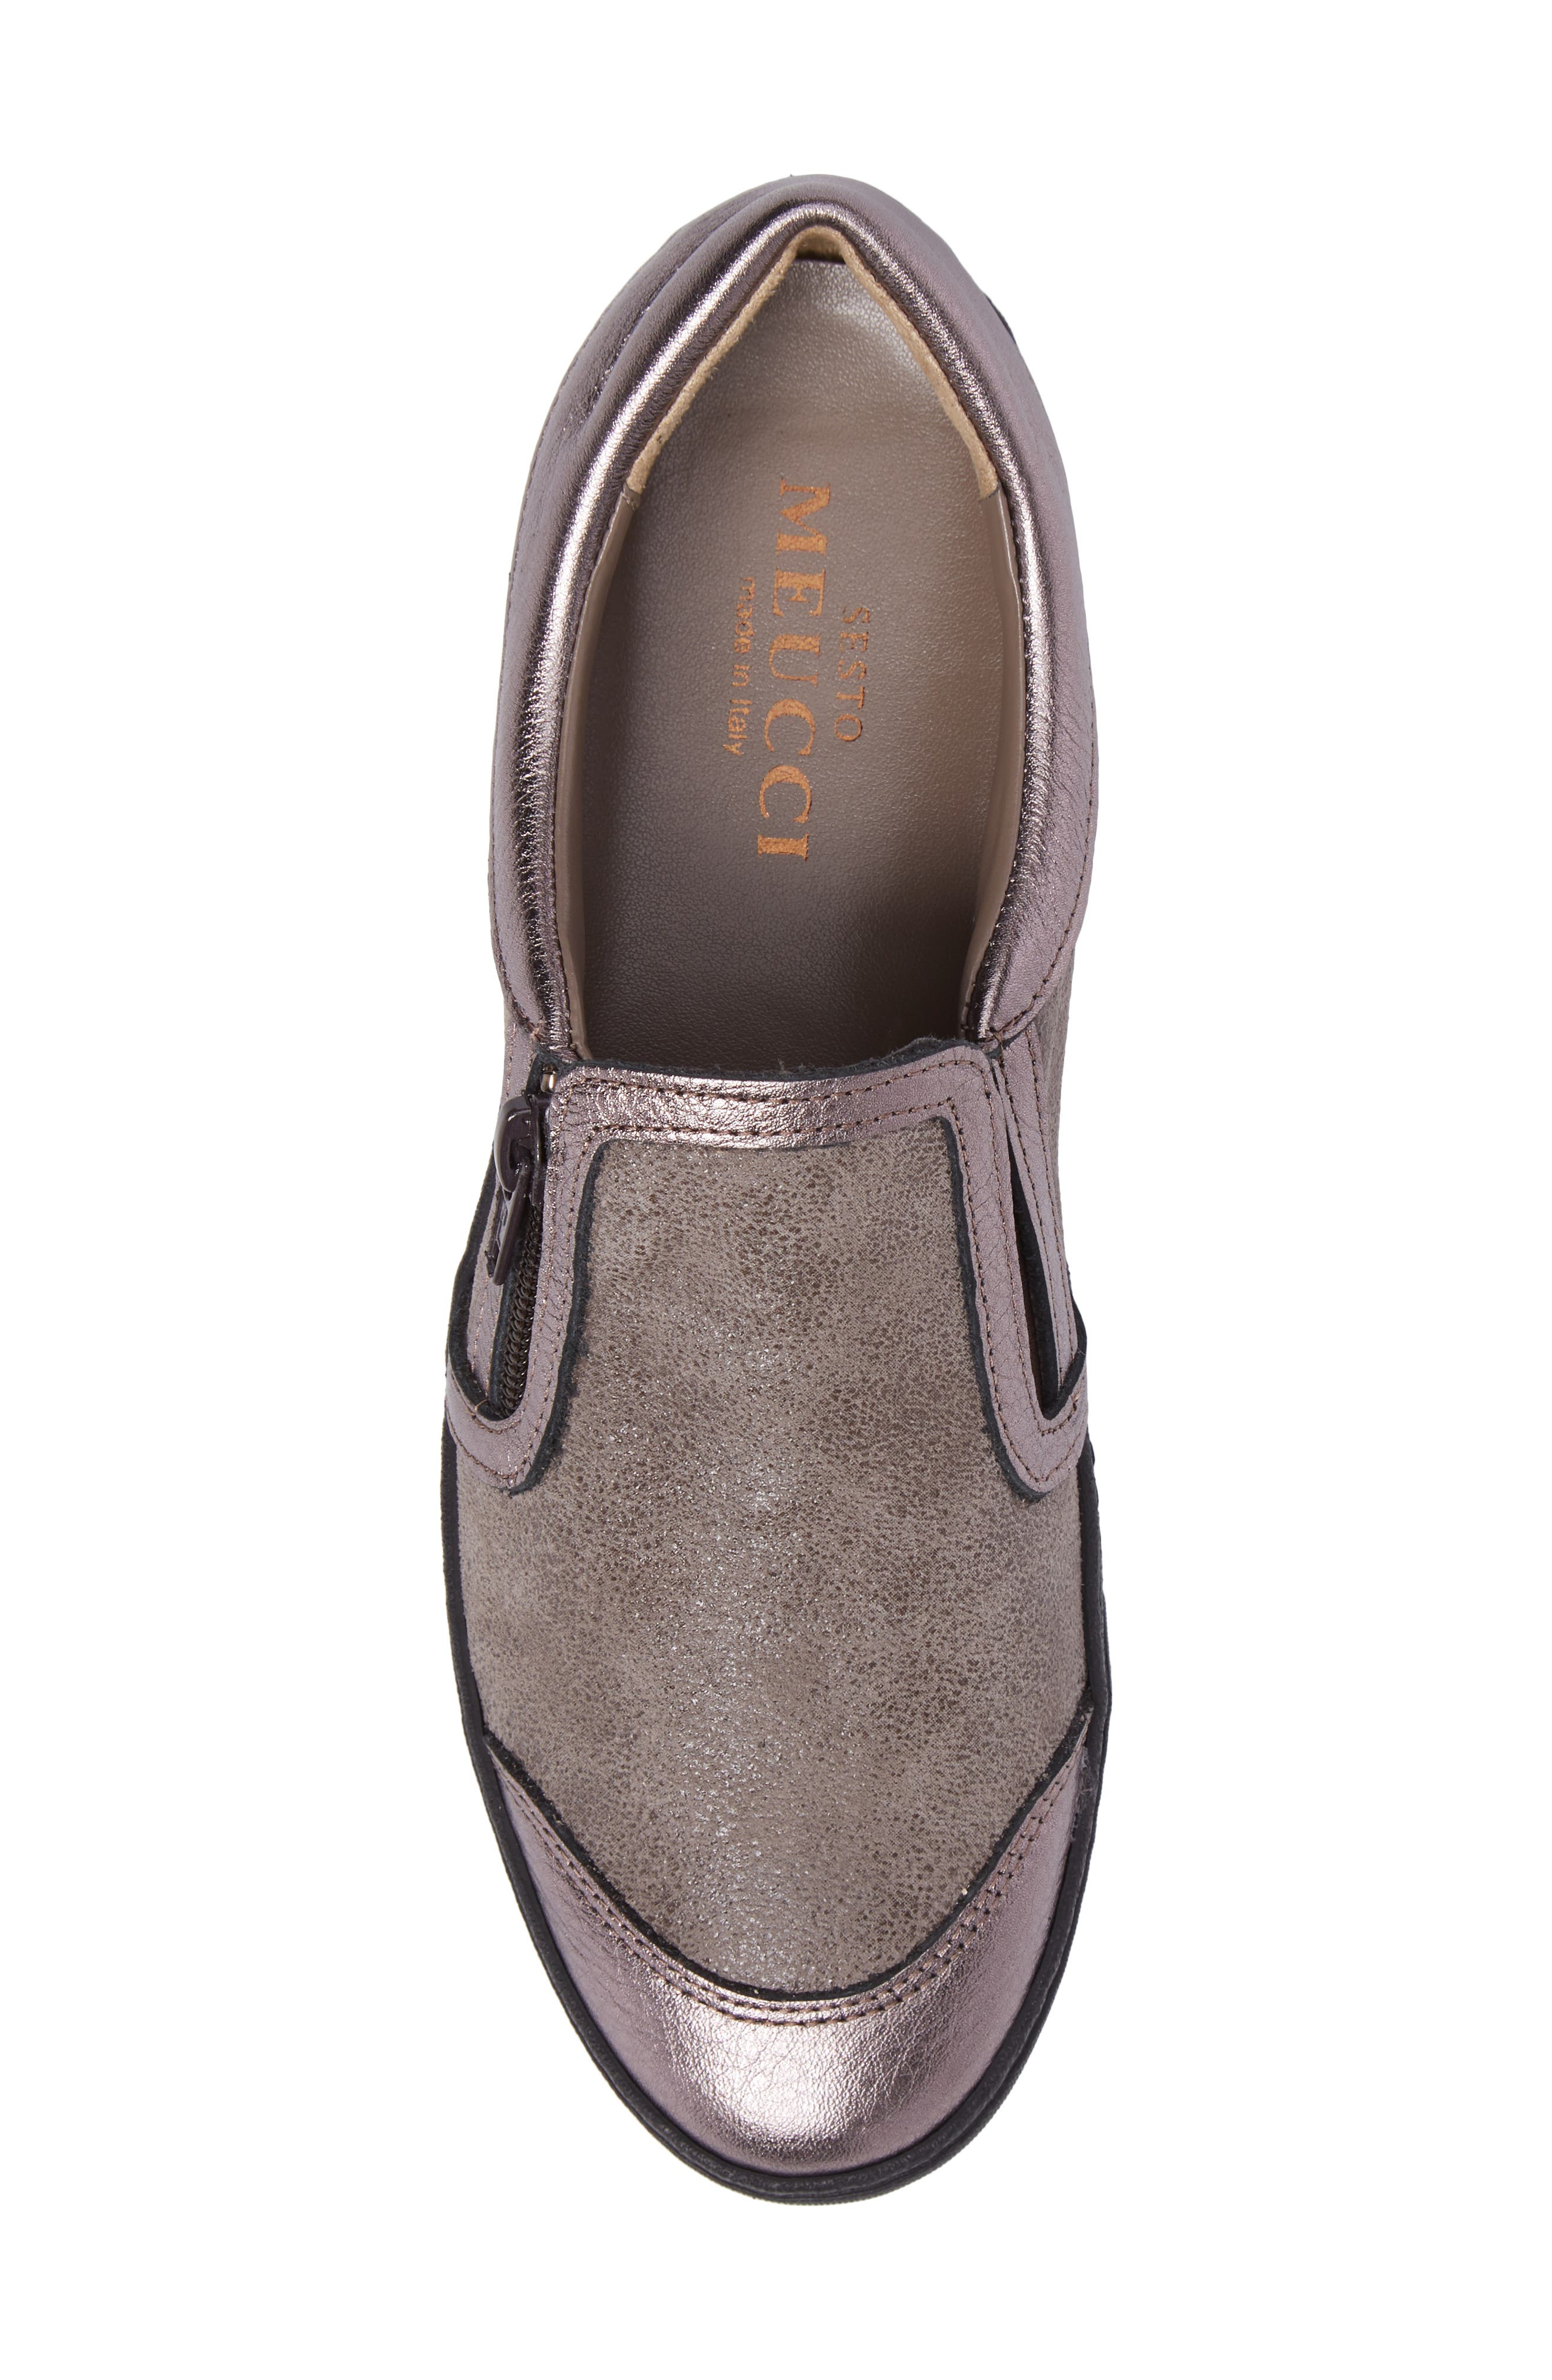 Fiorin Slip-On Sneaker,                             Alternate thumbnail 5, color,                             Taupe Fabric